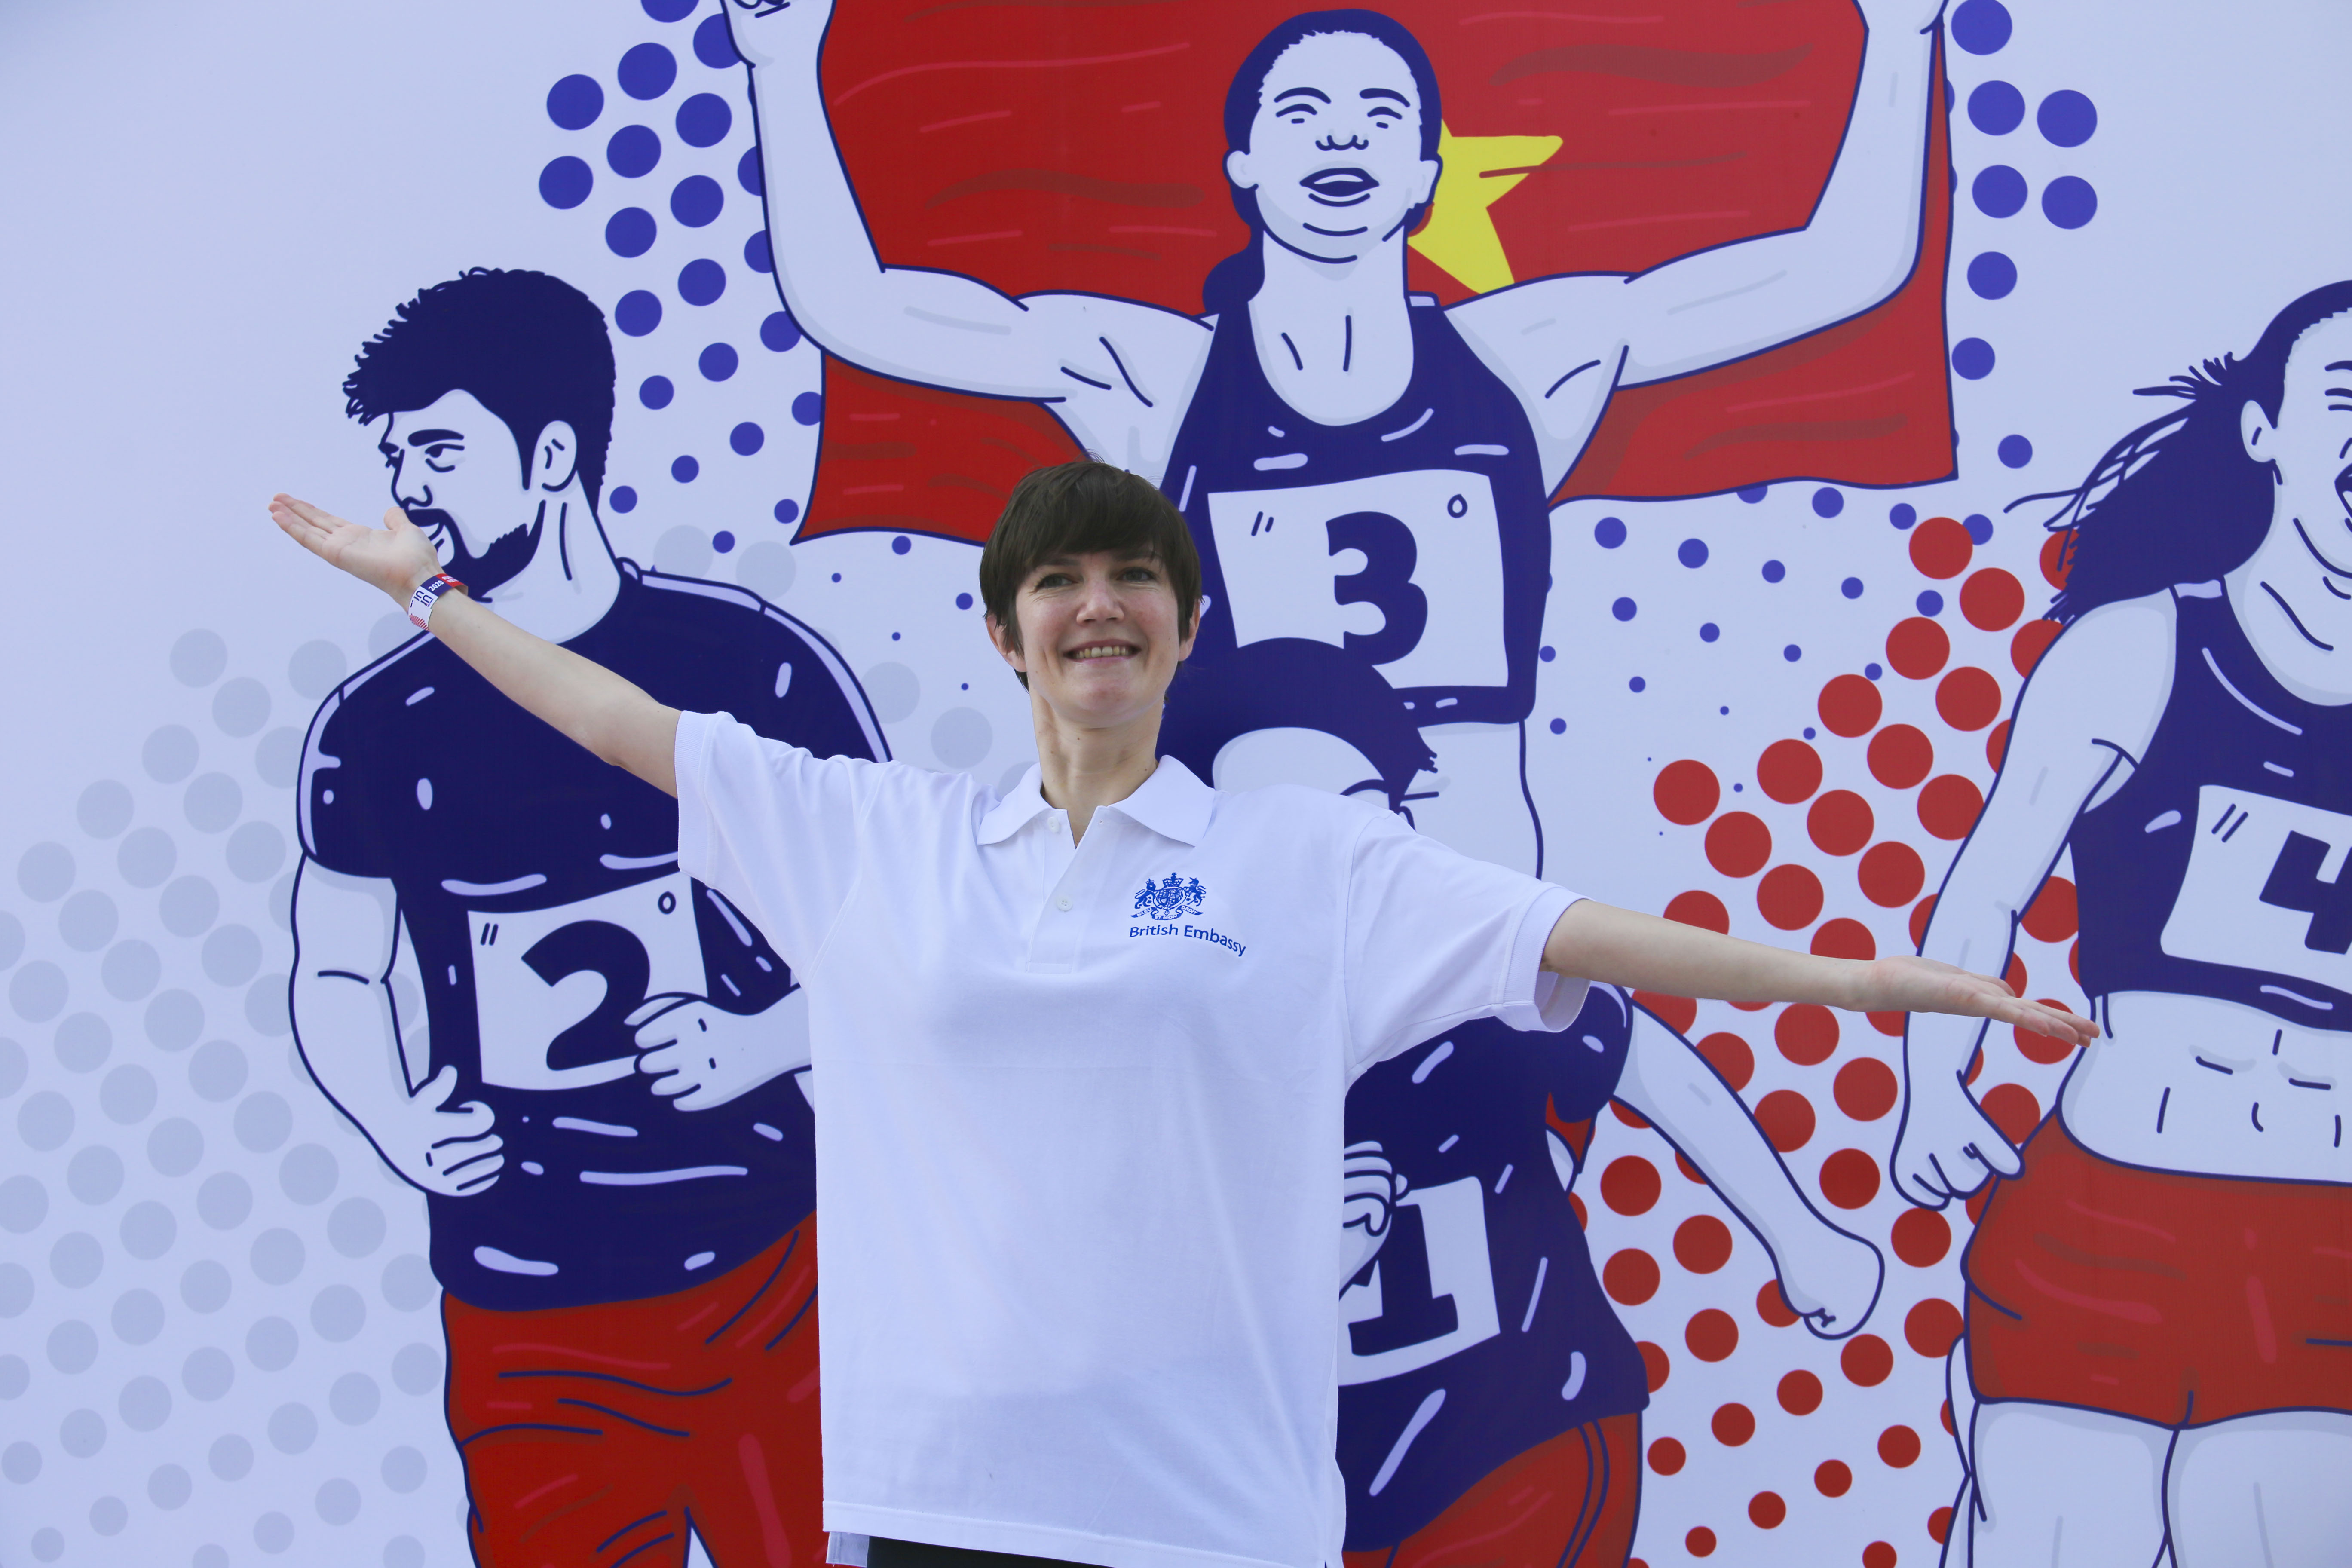 Emily Hamblin, UK Consul-General to Ho Chi Minh City poses for a photo while taking part in the 20th BritCham Charity Fun Run in Ho Chi Minh City on November 15,2020. Photo: Duc Khue/ Tuoi Tre